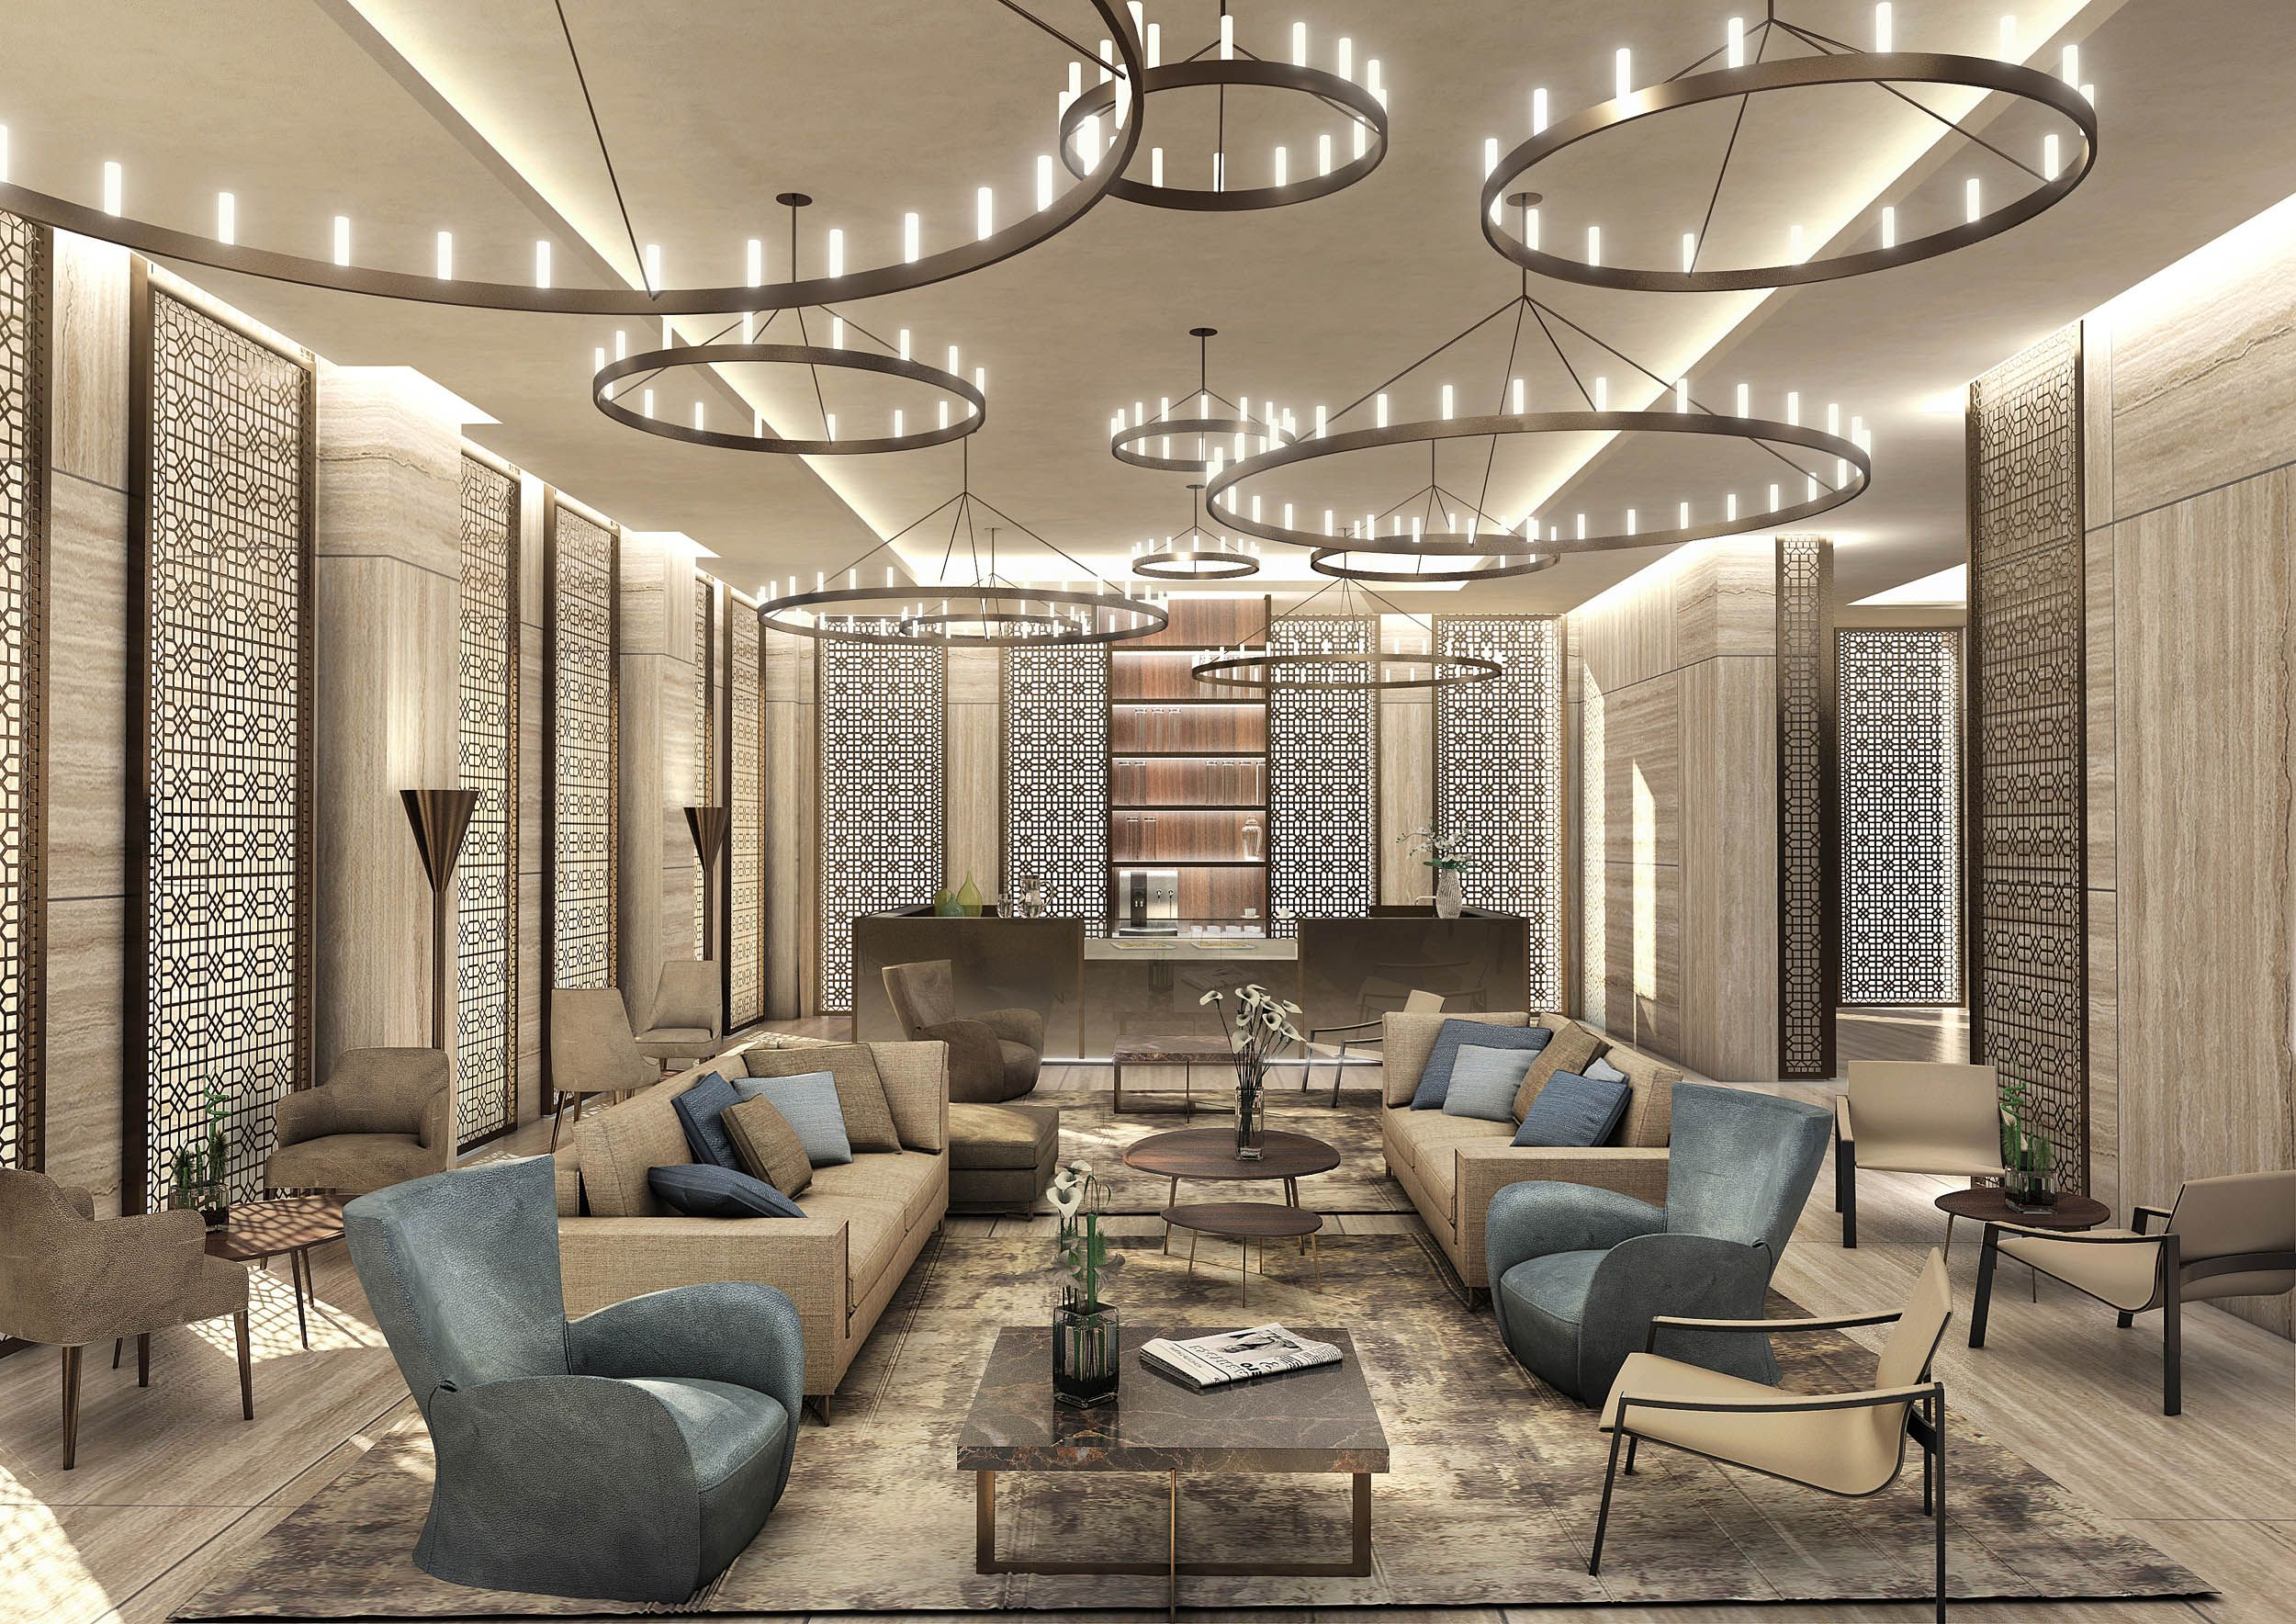 Top Interior Design Project Of A Luxury Residence Tower In Doha Hospitality Fraser Suite Best Interior Design Blogs Advanced Interior Designs Interior Design